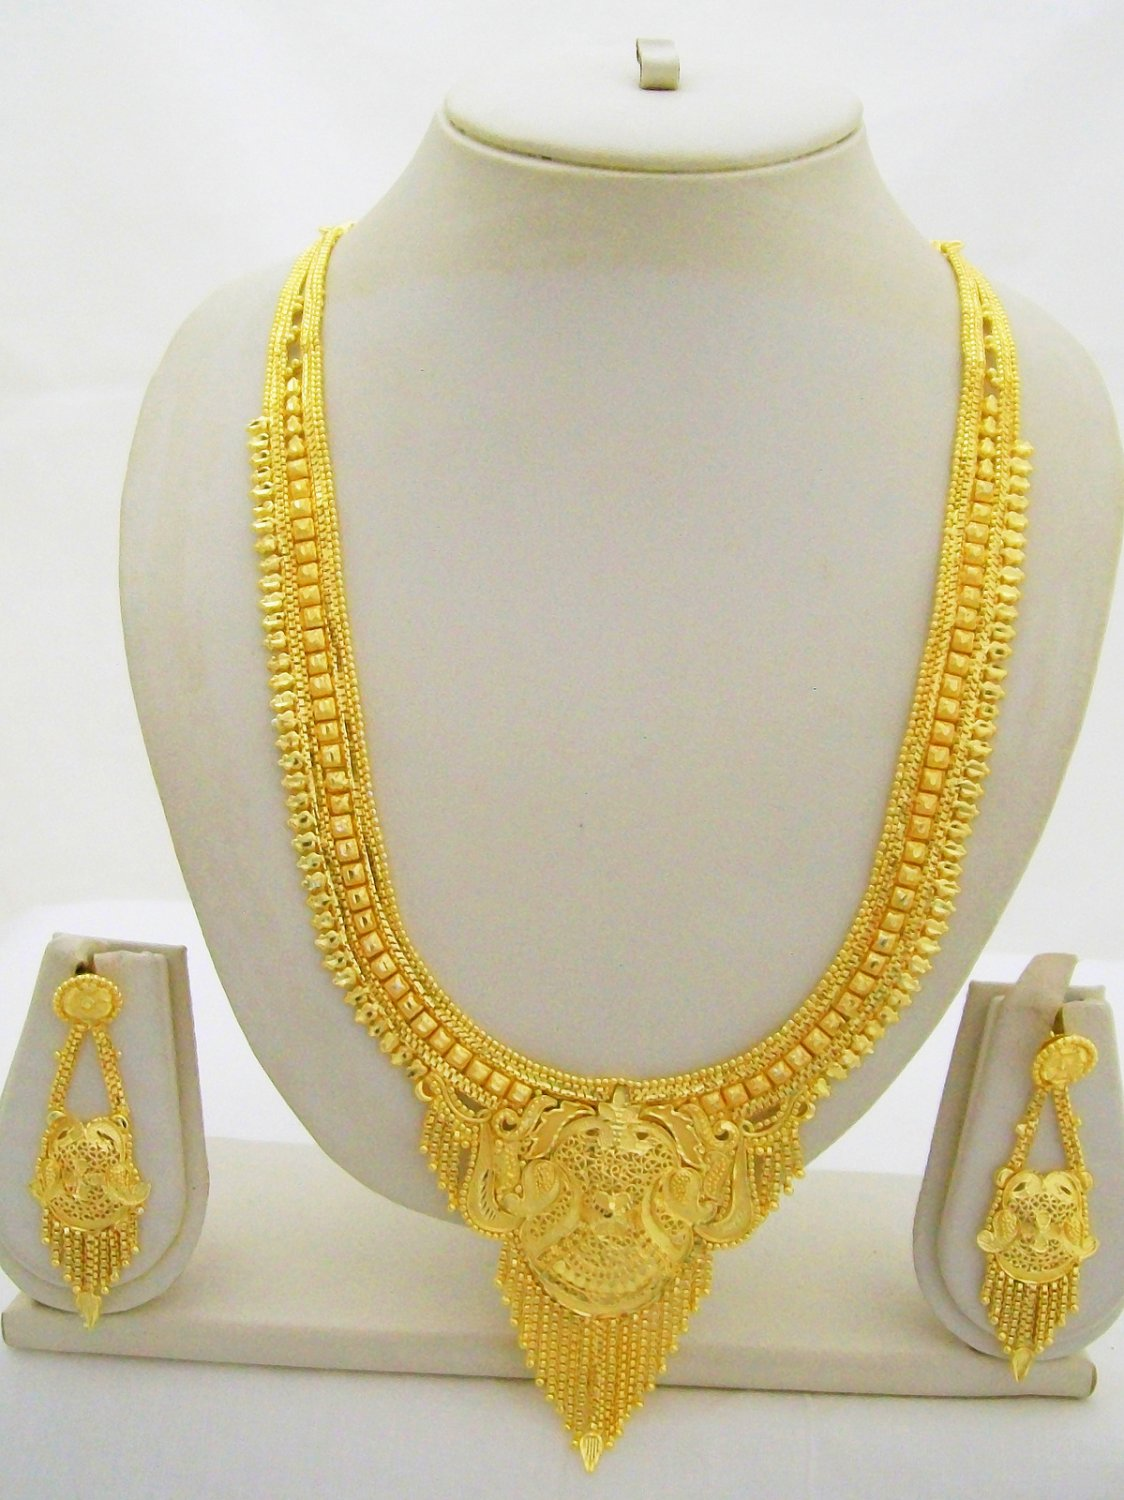 Gold Plated Indian Rani Haar Necklace Filigree Long Antique Ethnic Jewelry Set